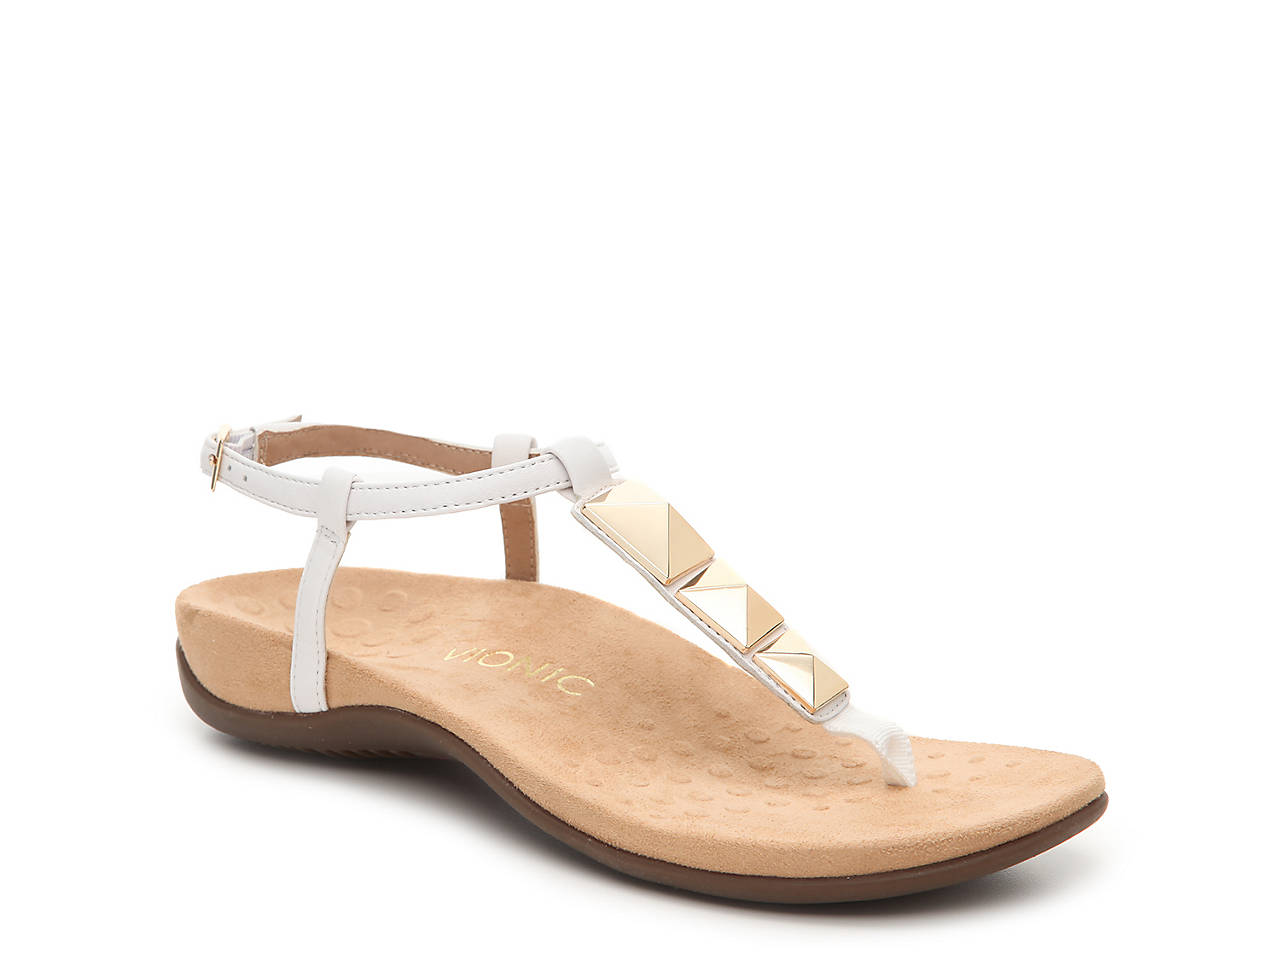 780df0d167d2 Vionic Nala Sandal Women s Shoes